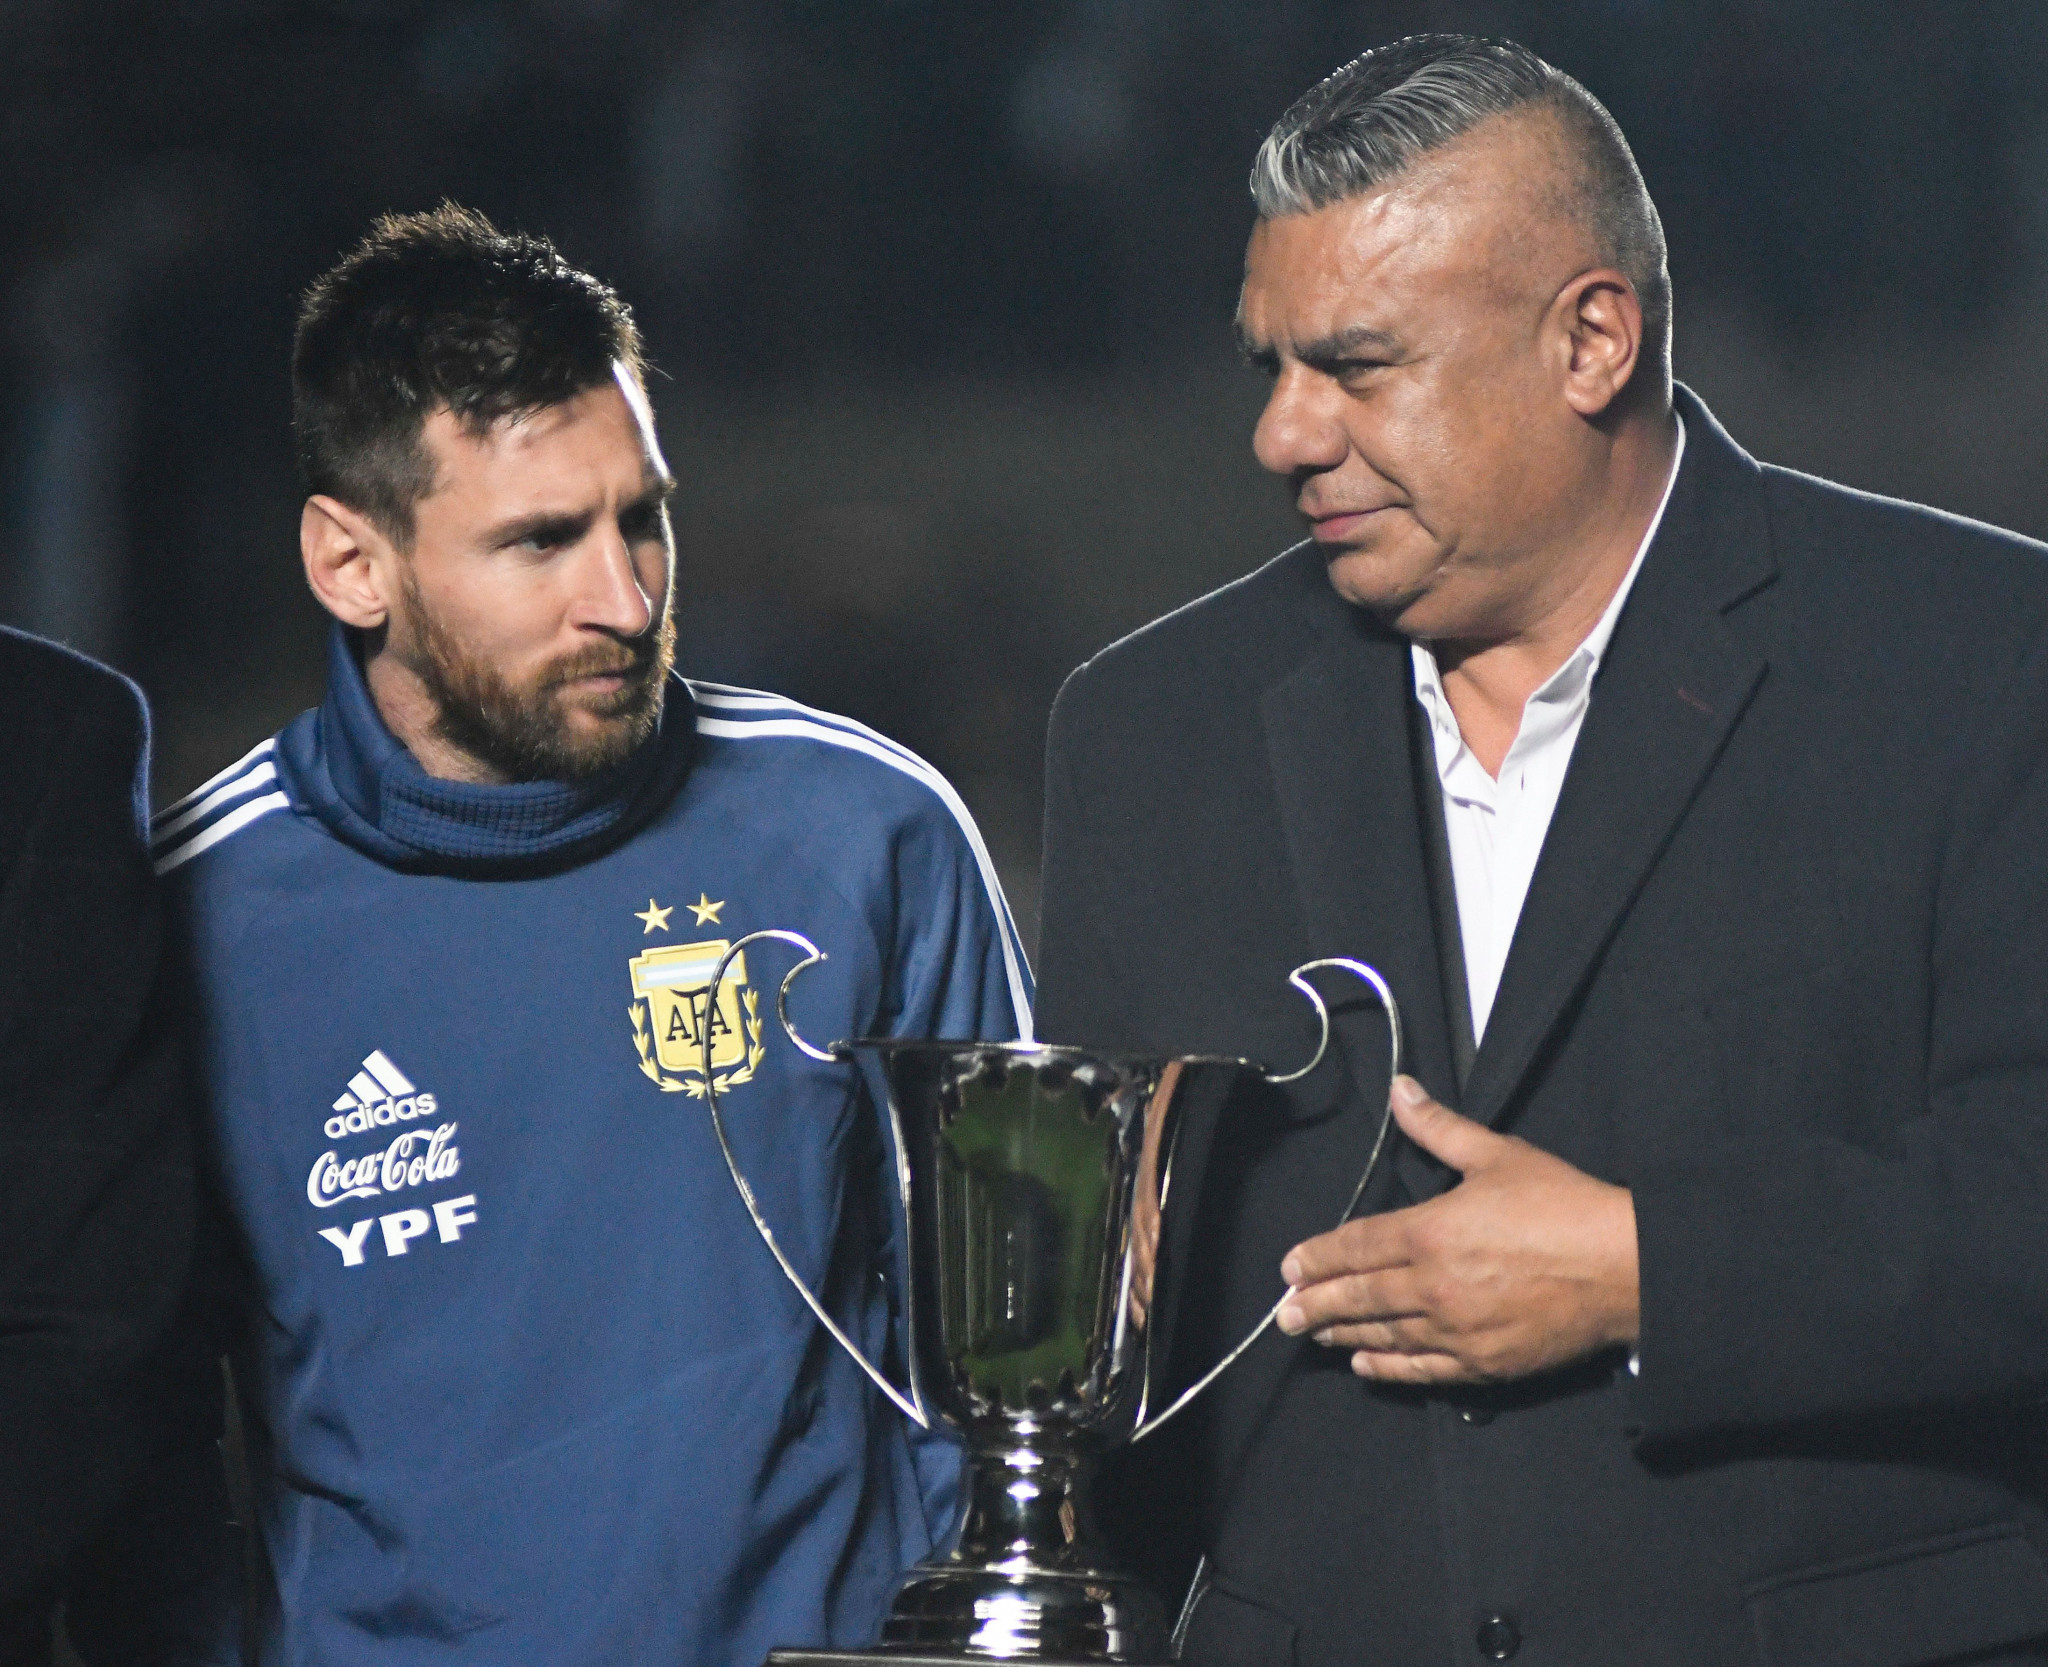 Like Lionel Messi, Claudio Tapia claimed that Argentina's hopes of Copa América glory were shattered by biased refereeing decisions during their 2-0 semi-final loss to Brazil ©Getty Images